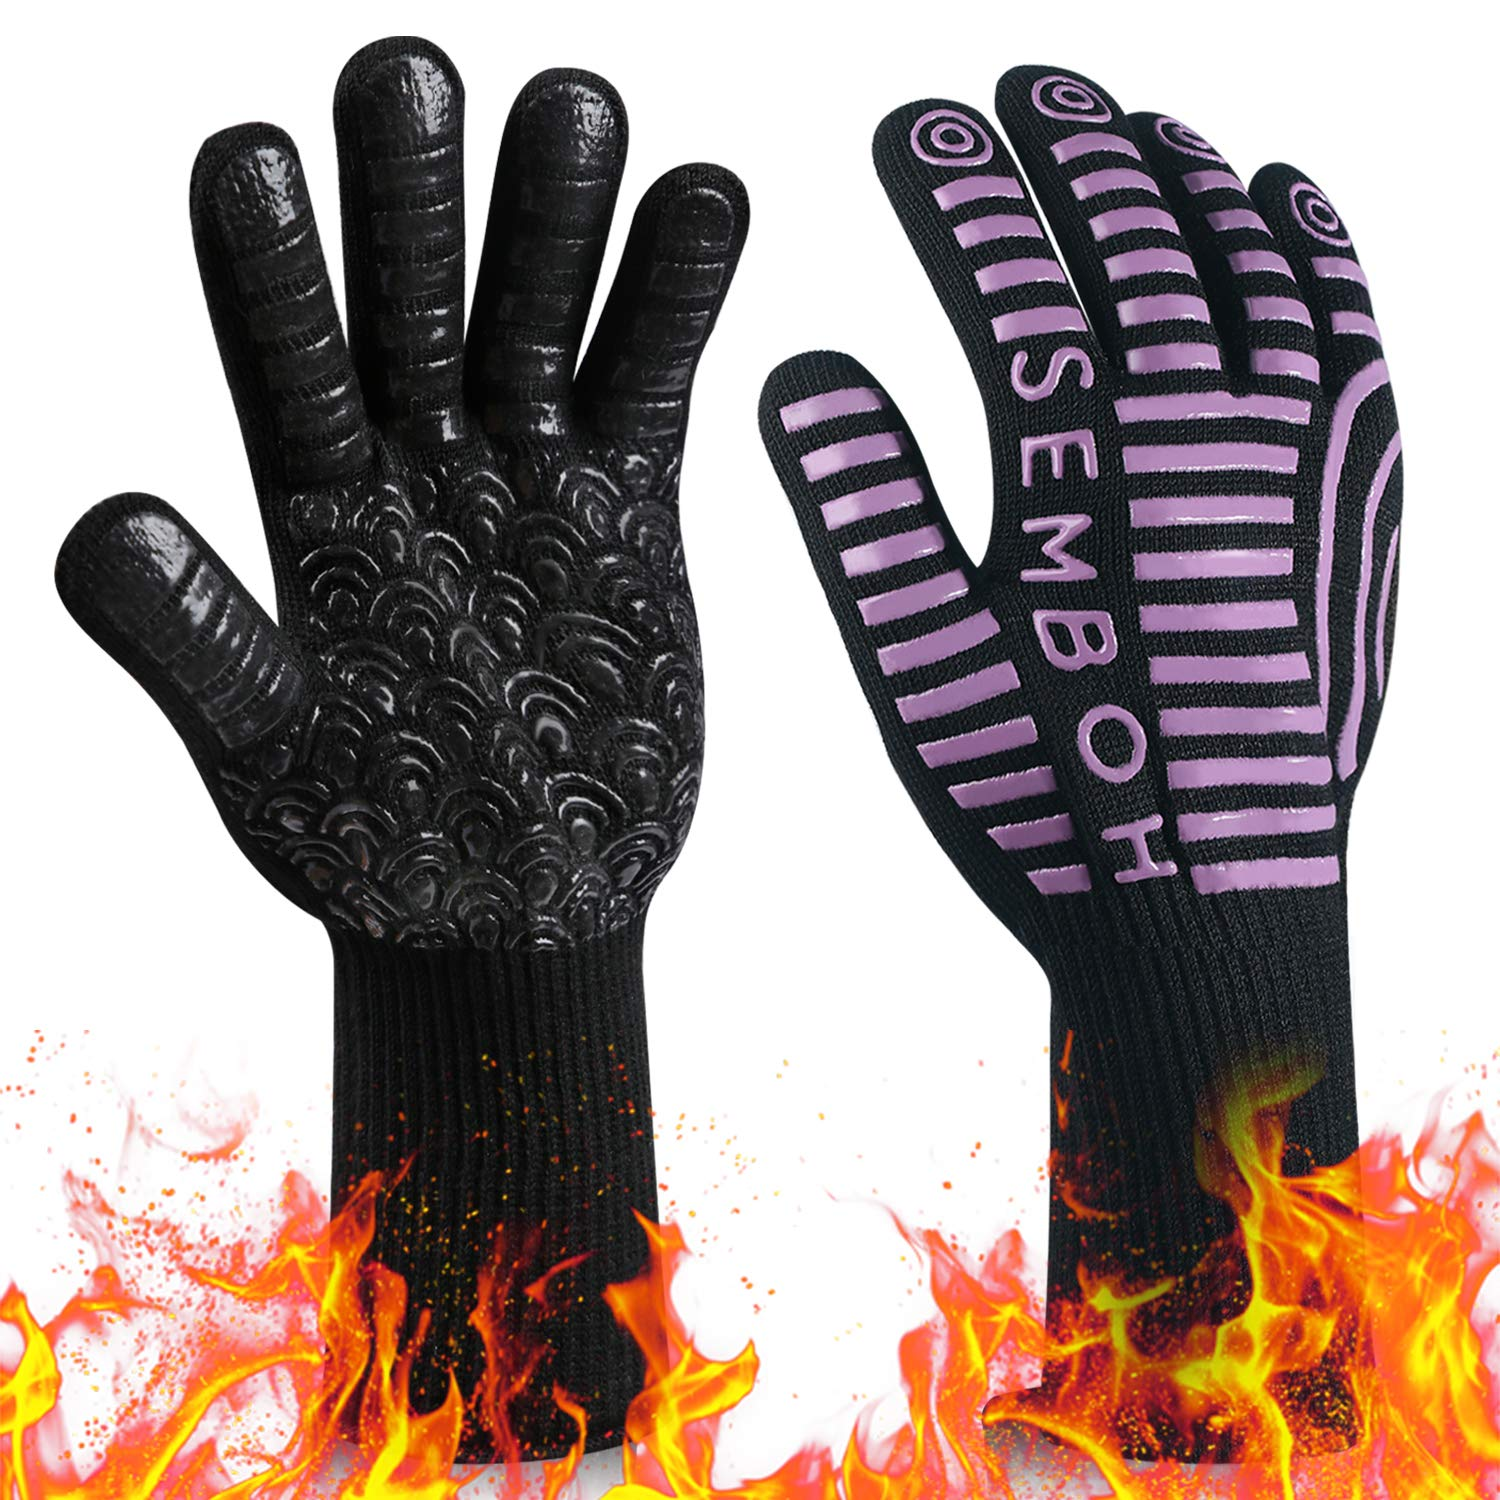 932℉ Extreme Heat Resistant BBQ Gloves, Food Grade Kitchen Oven Mitts - Flexible Oven Gloves with Hot Resistant, Silicone Non-Slip Cooking Hot Glove for Grilling, Cutting, Baking, Welding (1 Pair) by